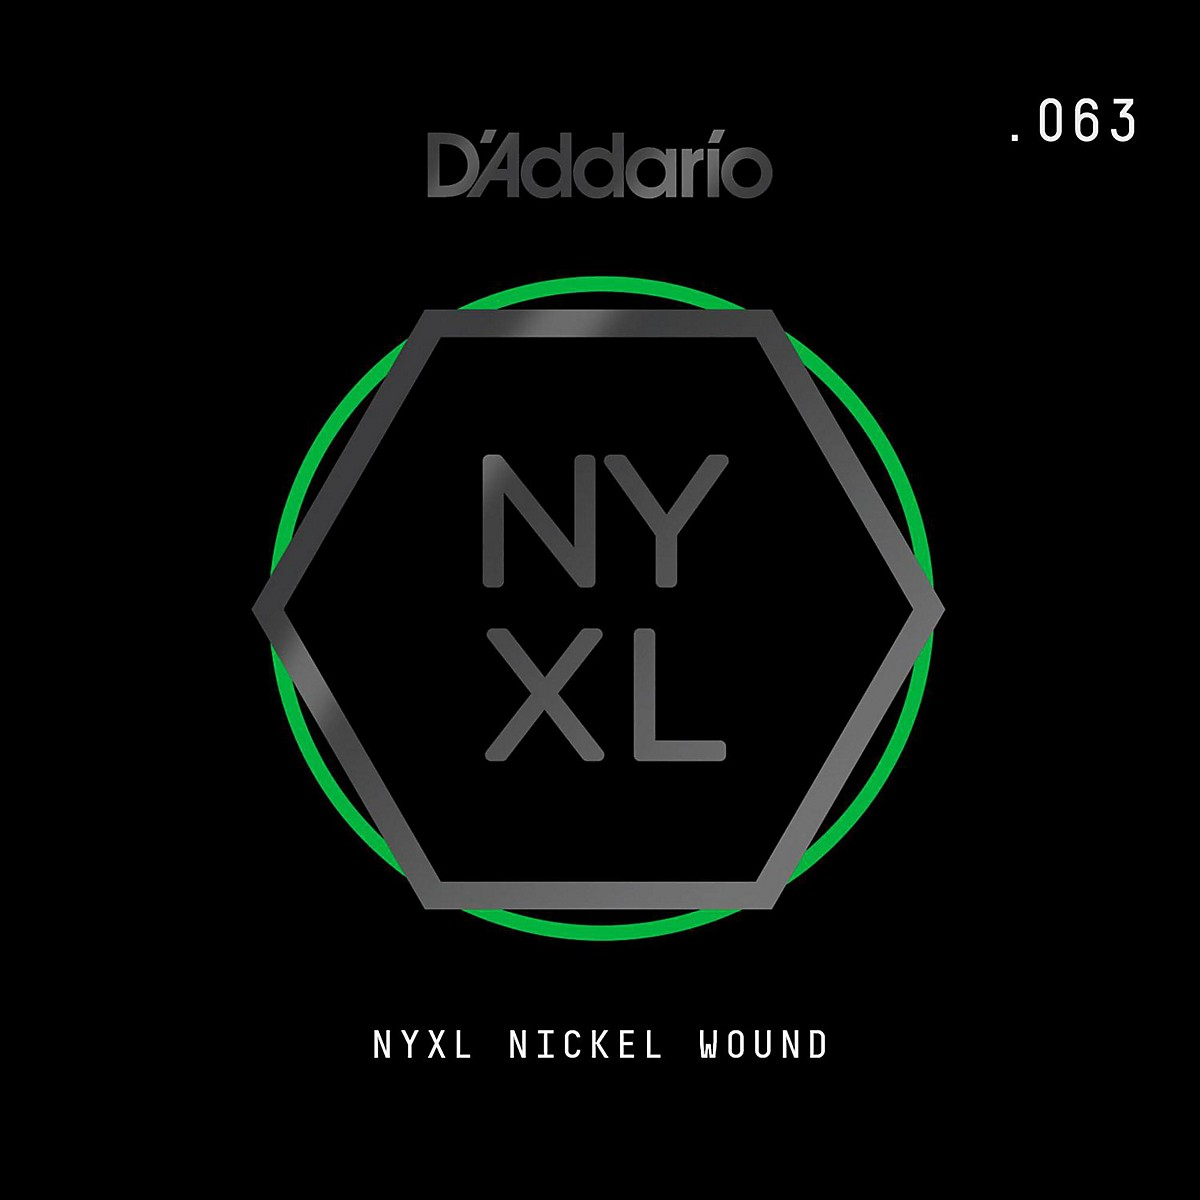 D'Addario NYNW063 NYXL Nickel Wound Electric Guitar Single String, .063